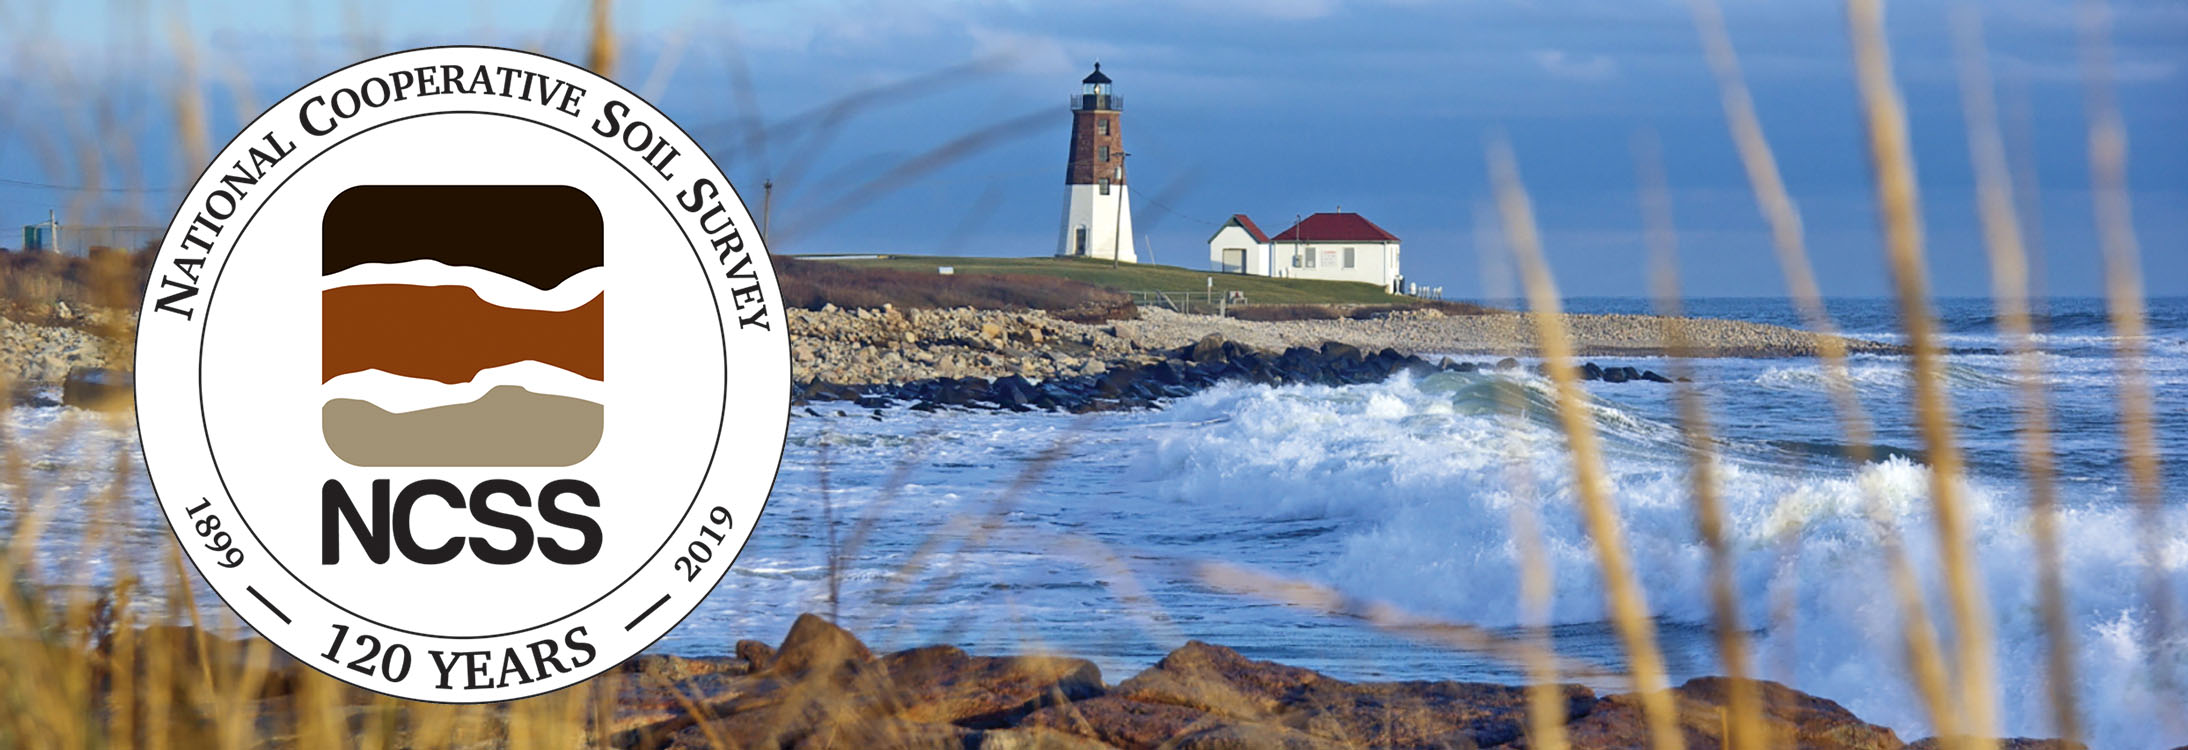 Point Judith Light is situated on Point Judith, RI, and extends outward more than a mile from the Rhode Island coast. Photo credit: Point Judith Light 4 by Charlie Kellogg, some rights reserved.